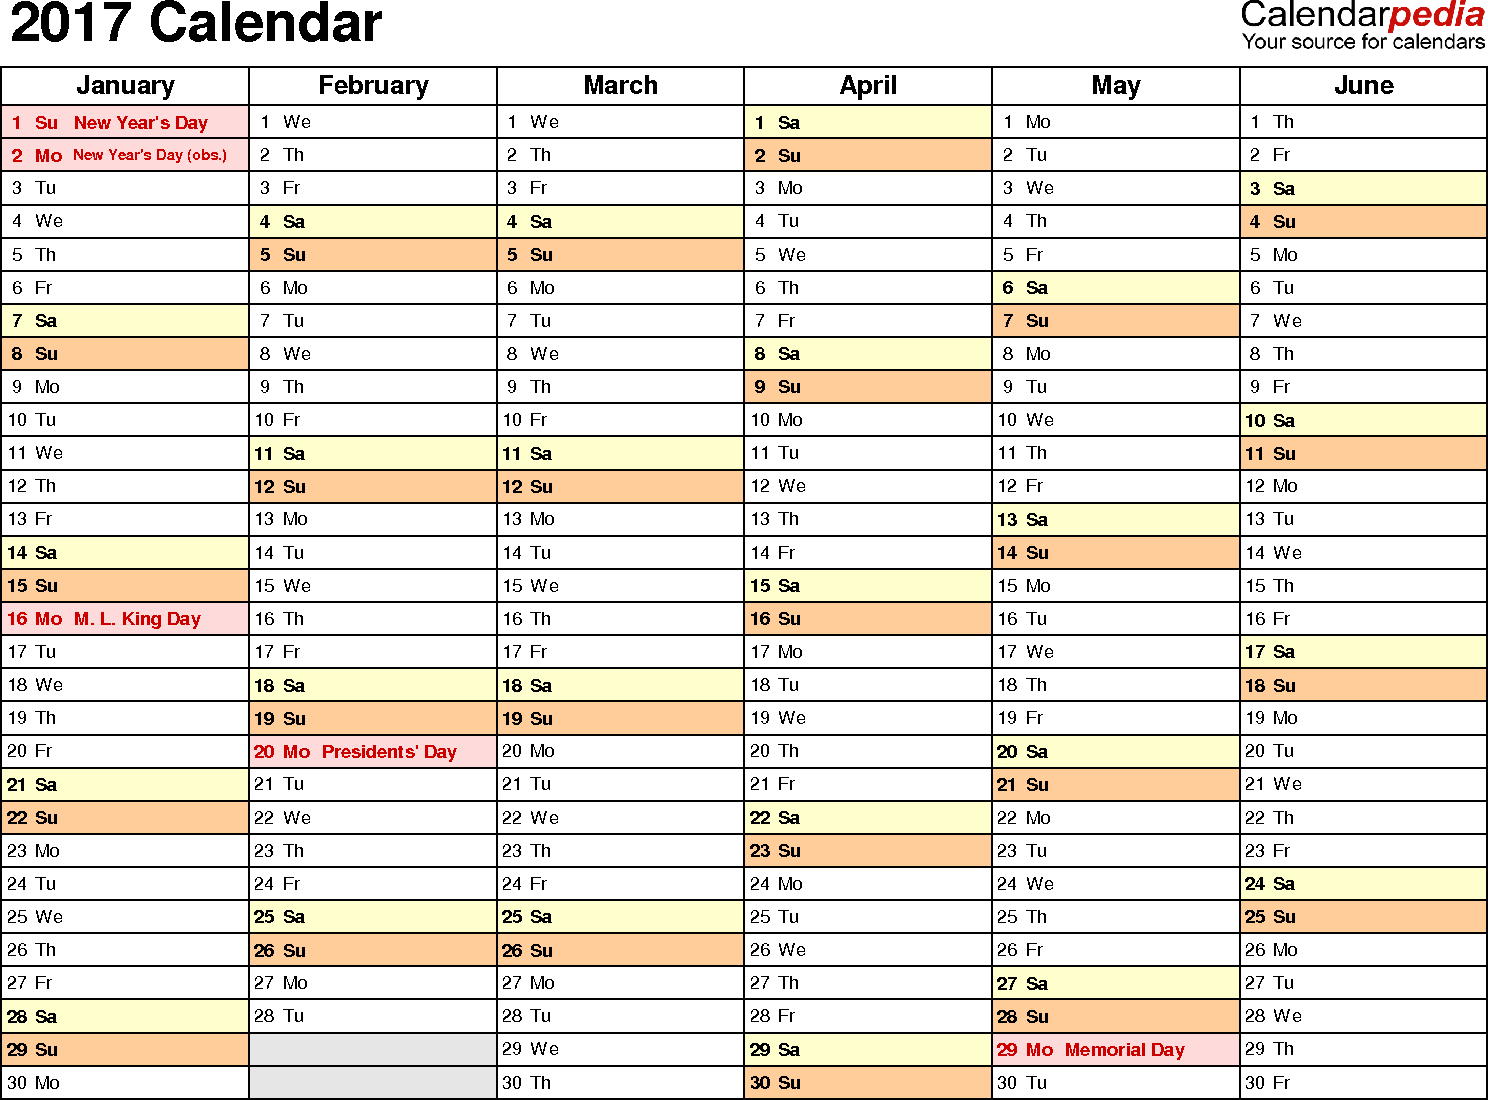 Ediblewildsus  Winning  Calendar  Download  Free Printable Excel Templates Xls With Great Template   Calendar For Excel Months Horizontally  Pages Landscape Orientation With Breathtaking Compounding Interest In Excel Also How Excel Works In Addition Large Formula Excel And Excel Percentage Format As Well As Change Date To Text In Excel Additionally Excel  Datedif From Calendarpediacom With Ediblewildsus  Great  Calendar  Download  Free Printable Excel Templates Xls With Breathtaking Template   Calendar For Excel Months Horizontally  Pages Landscape Orientation And Winning Compounding Interest In Excel Also How Excel Works In Addition Large Formula Excel From Calendarpediacom